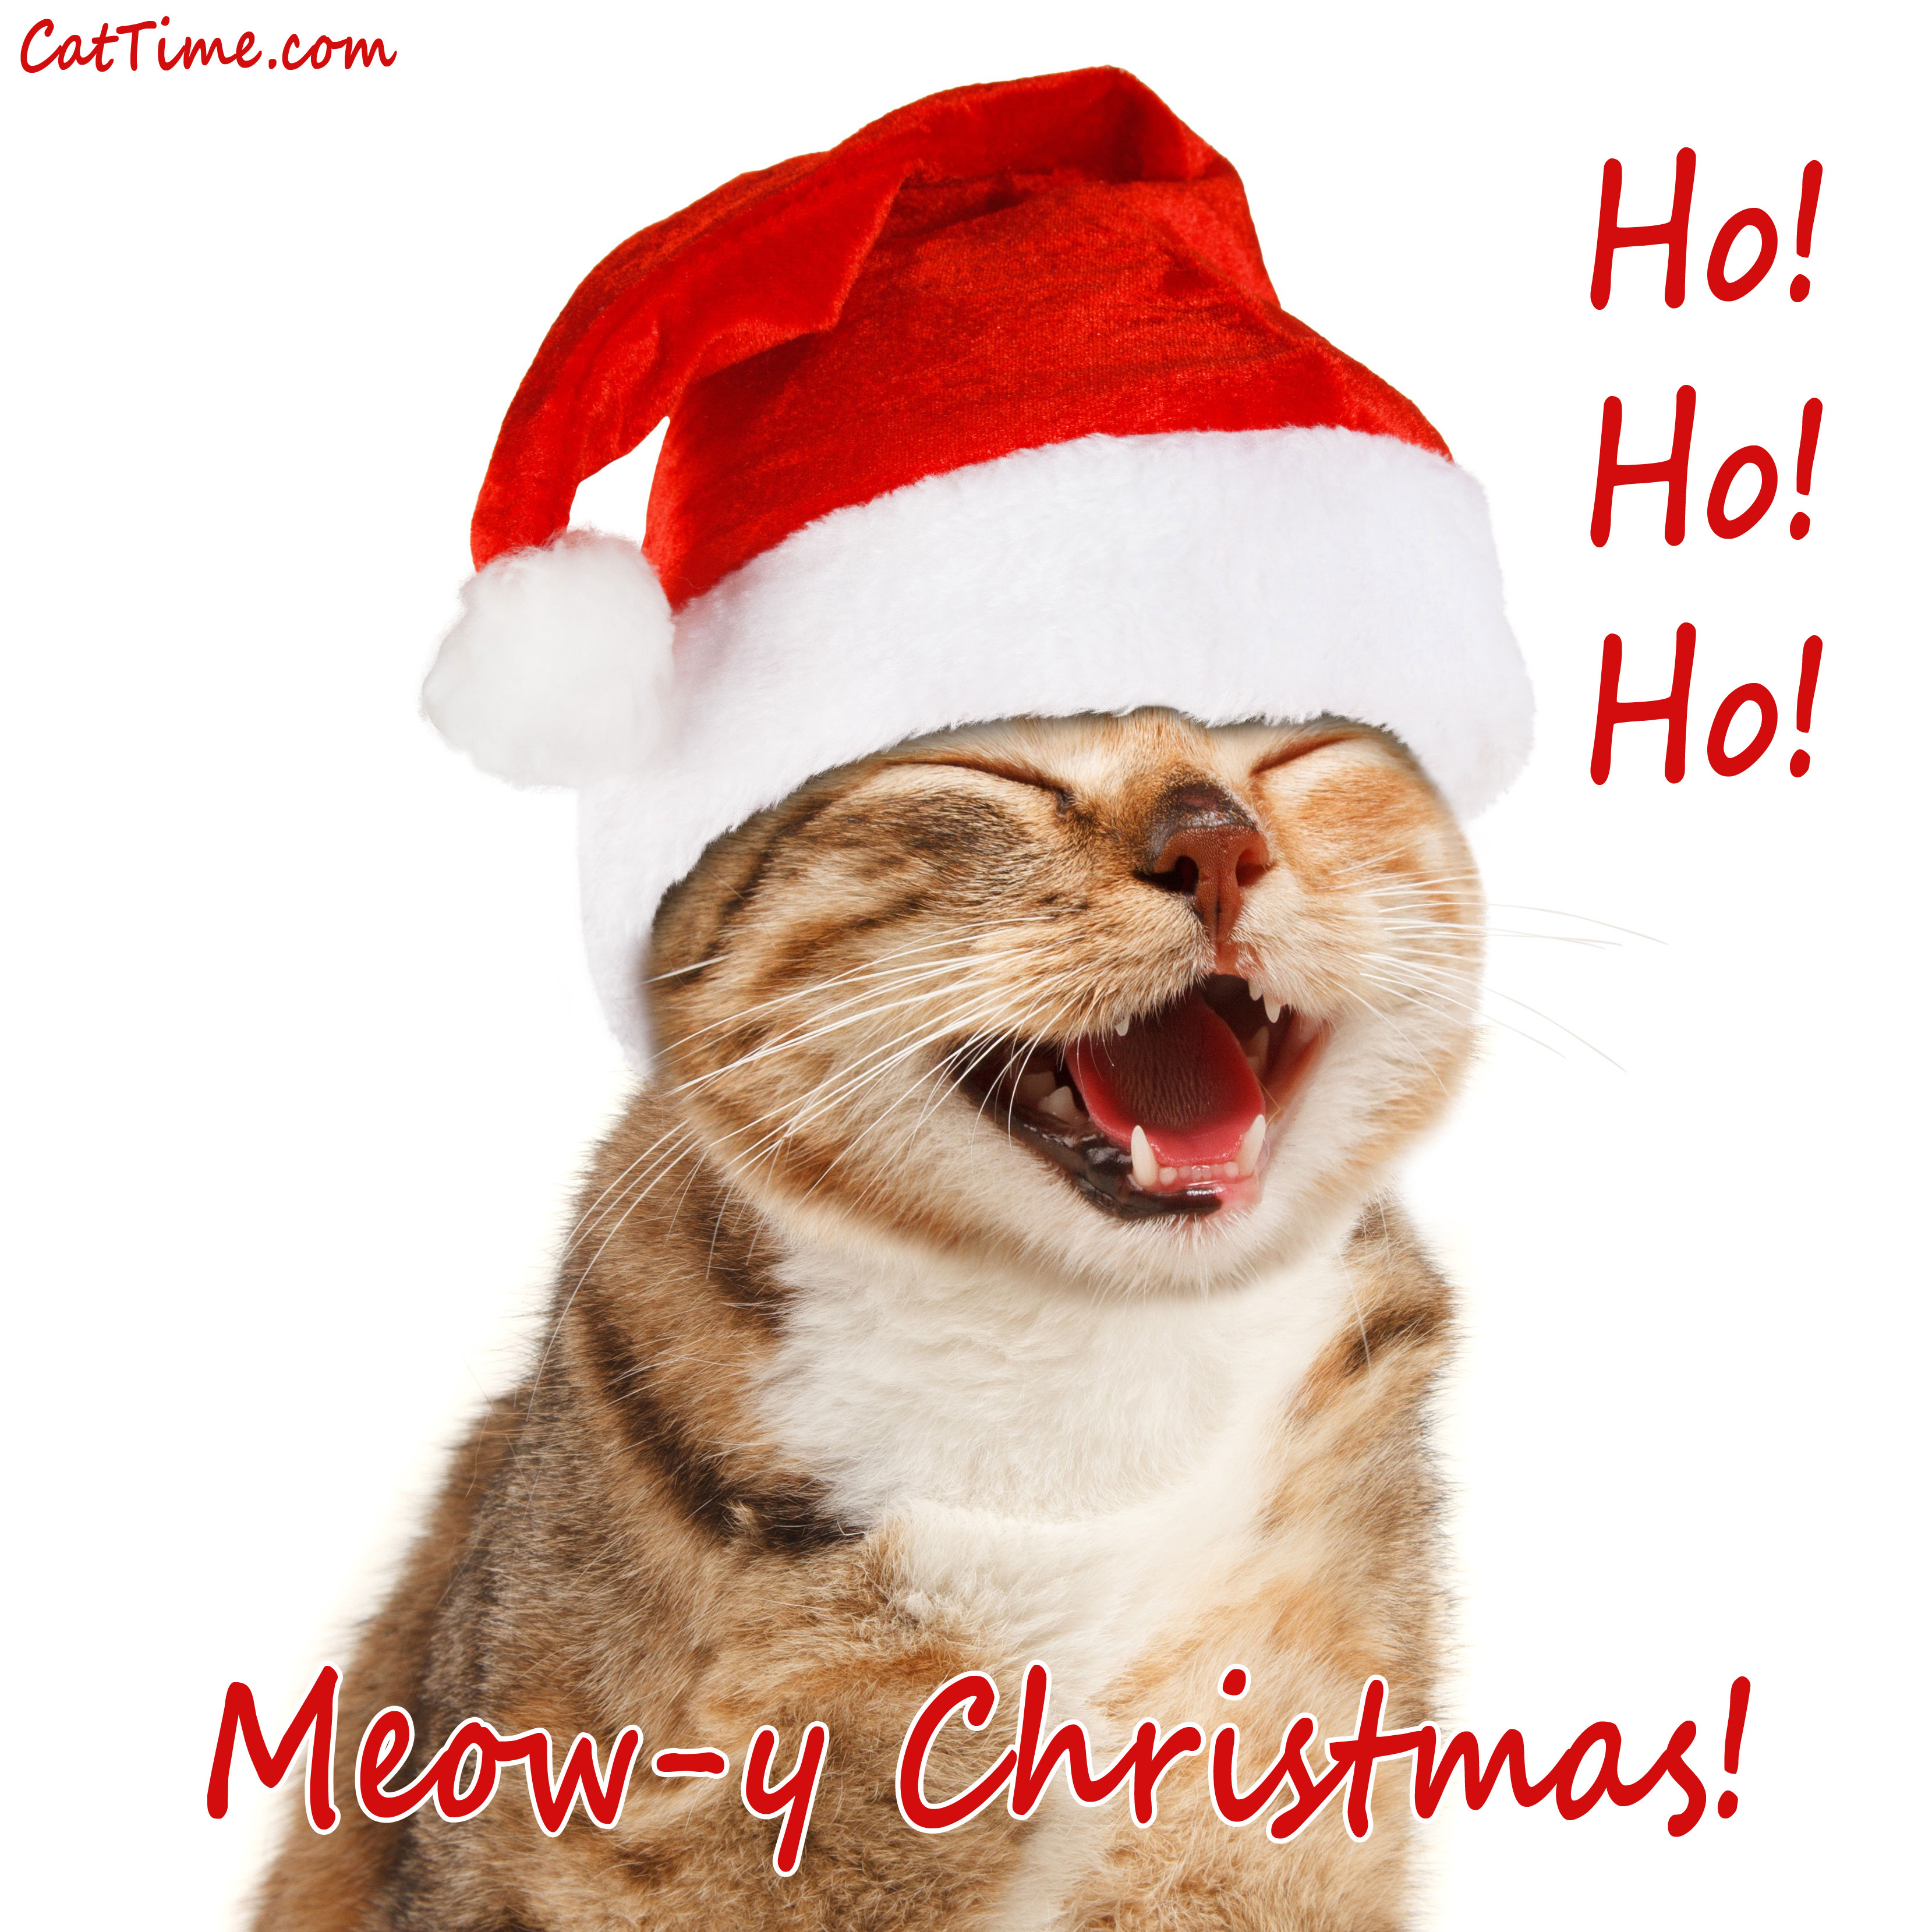 15 Cat Christmas E,Cards You Can Share With Your Friends And